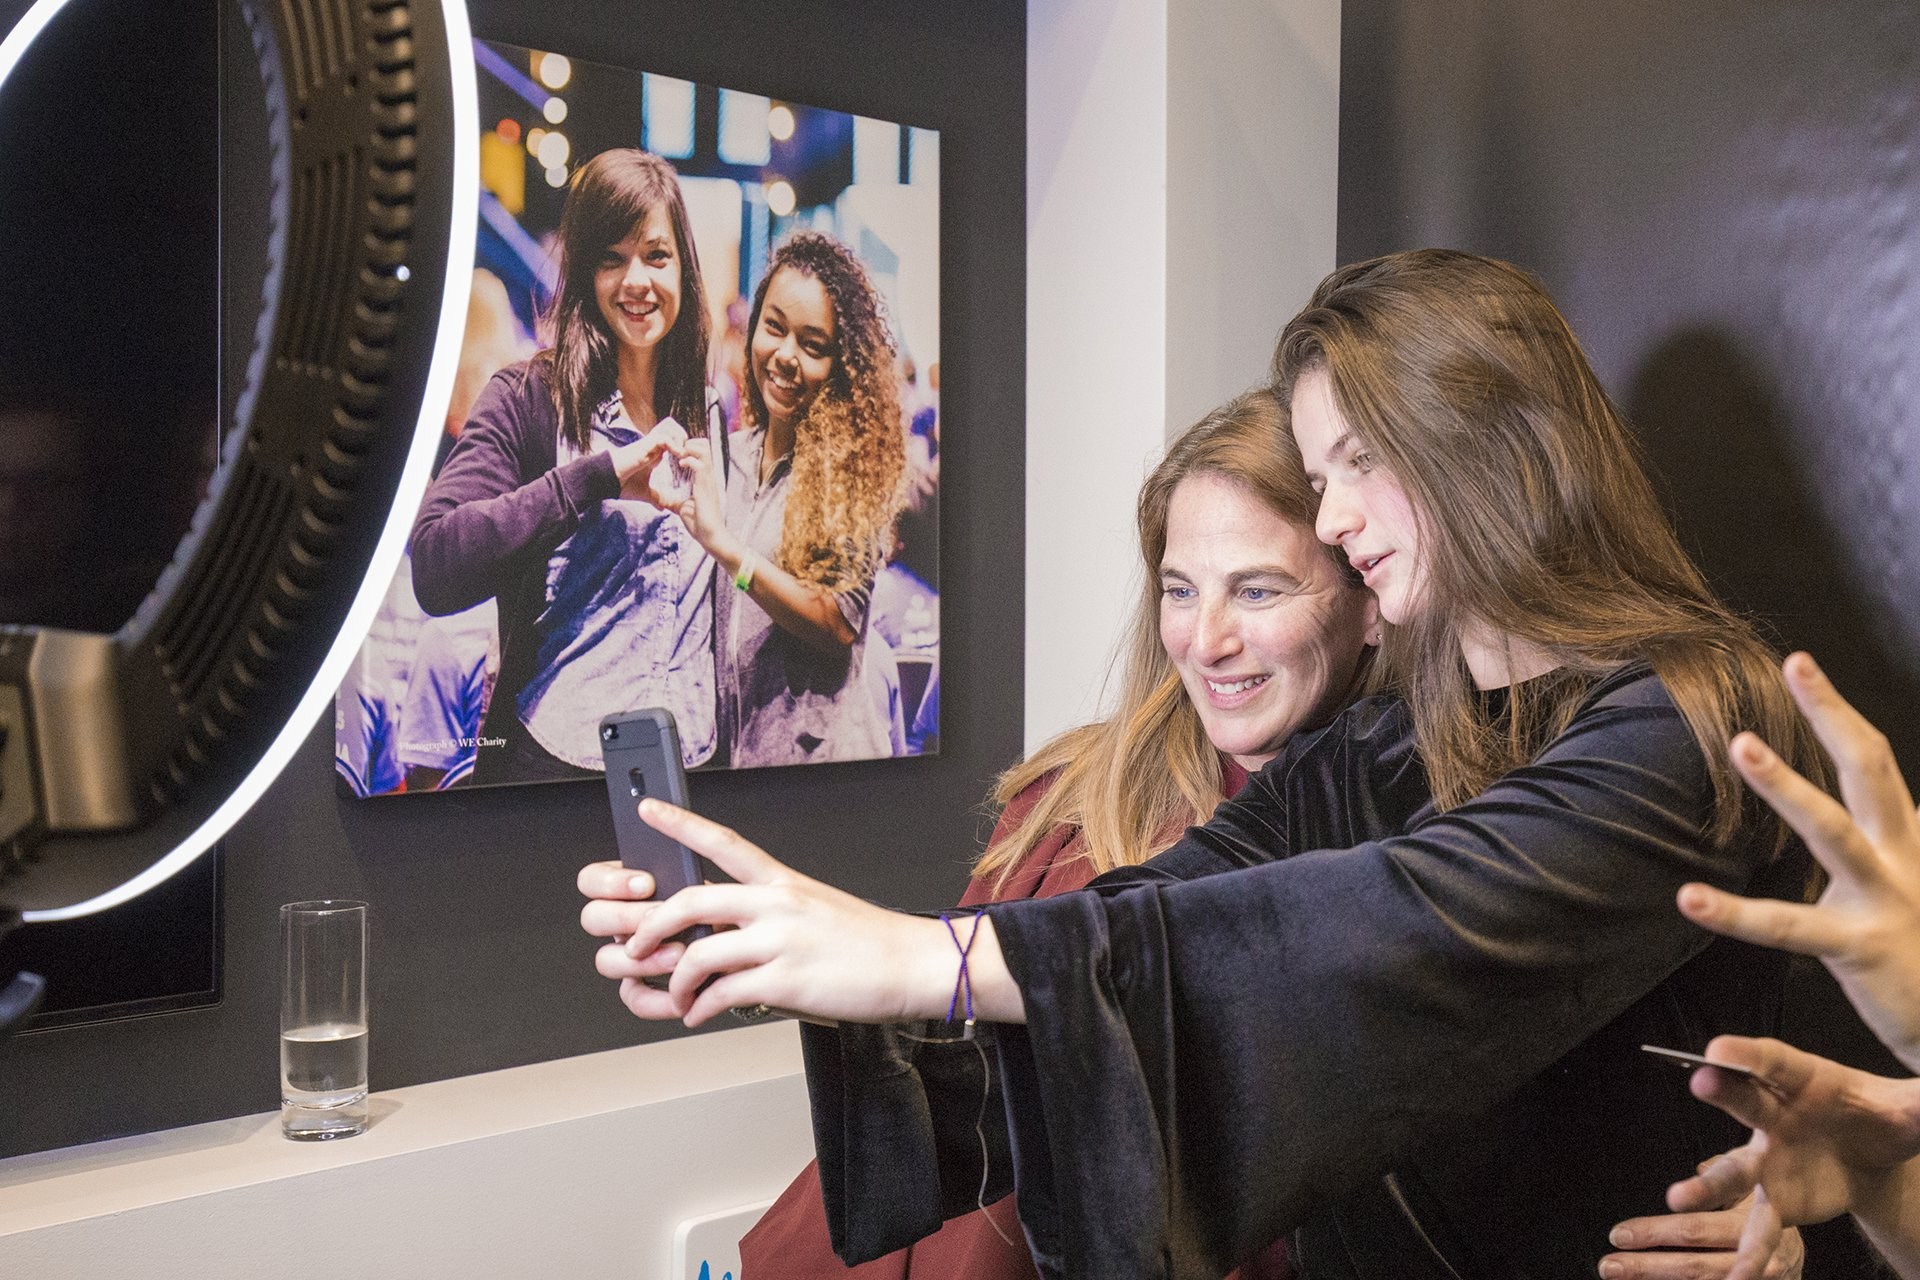 Two people take a selfie at the WE Global Learning Center